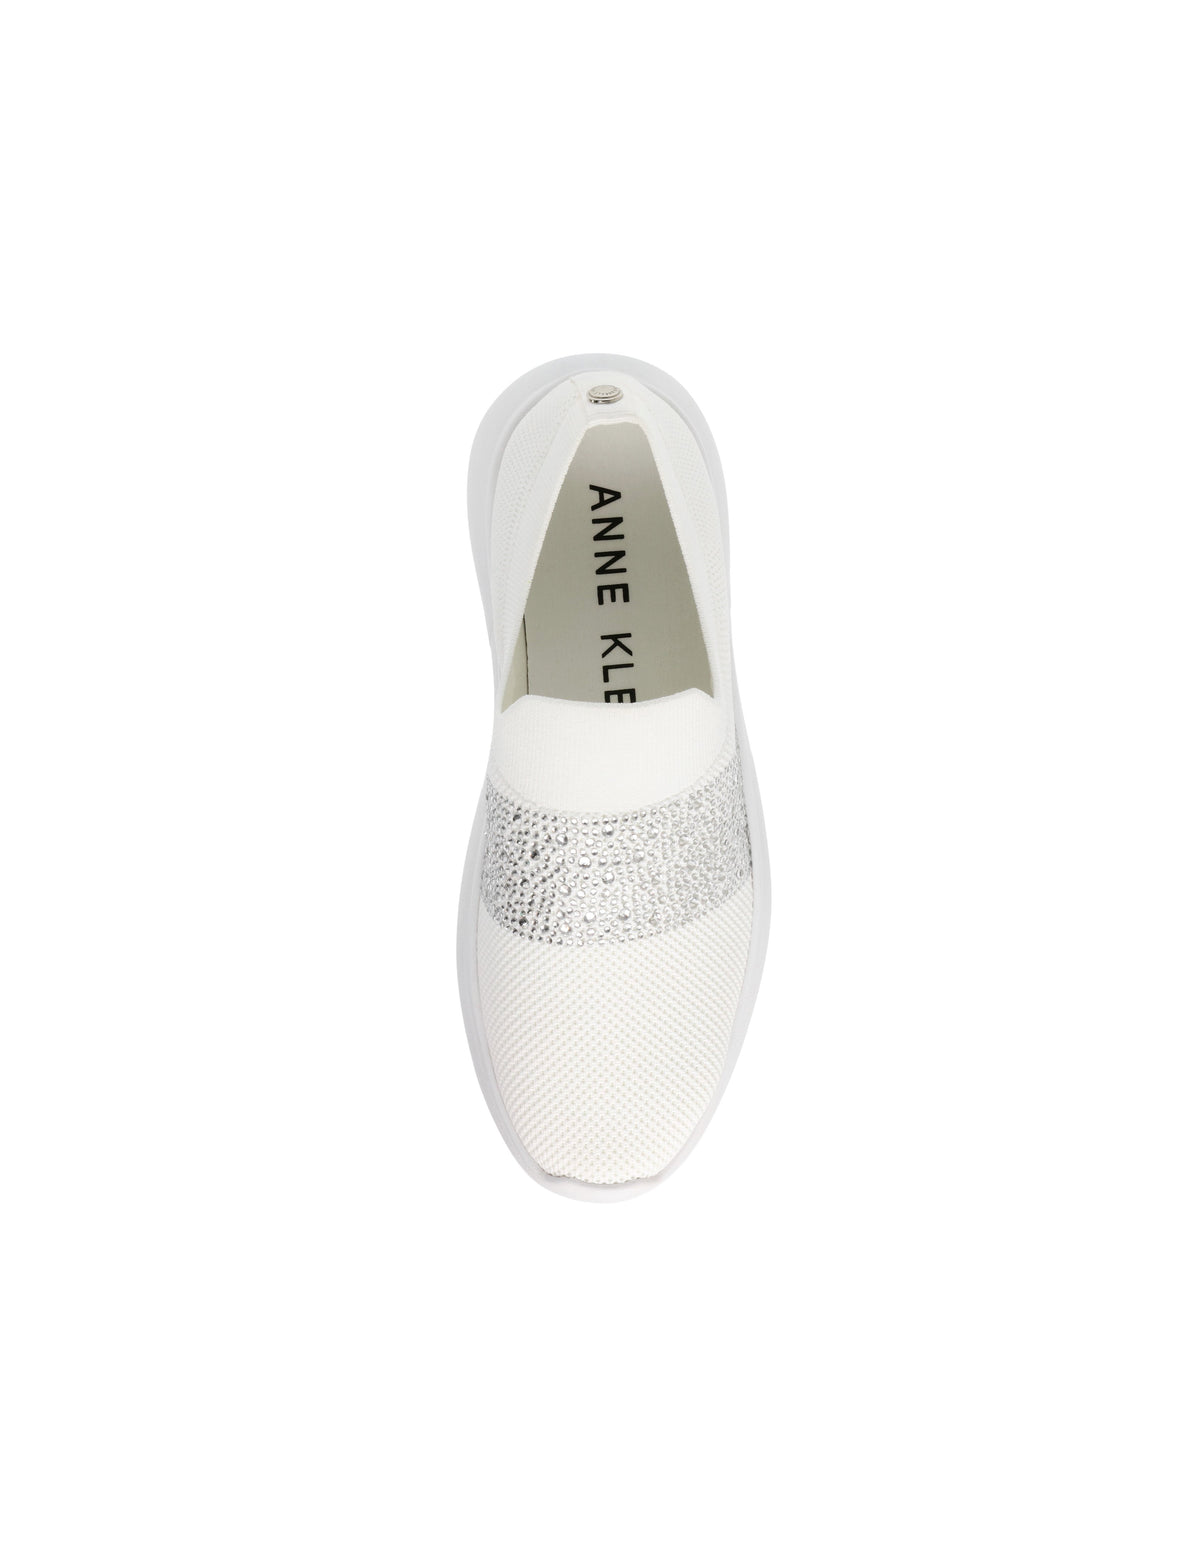 Anne Klein Libbie Elastic Crystal Front Knit Sneaker in White